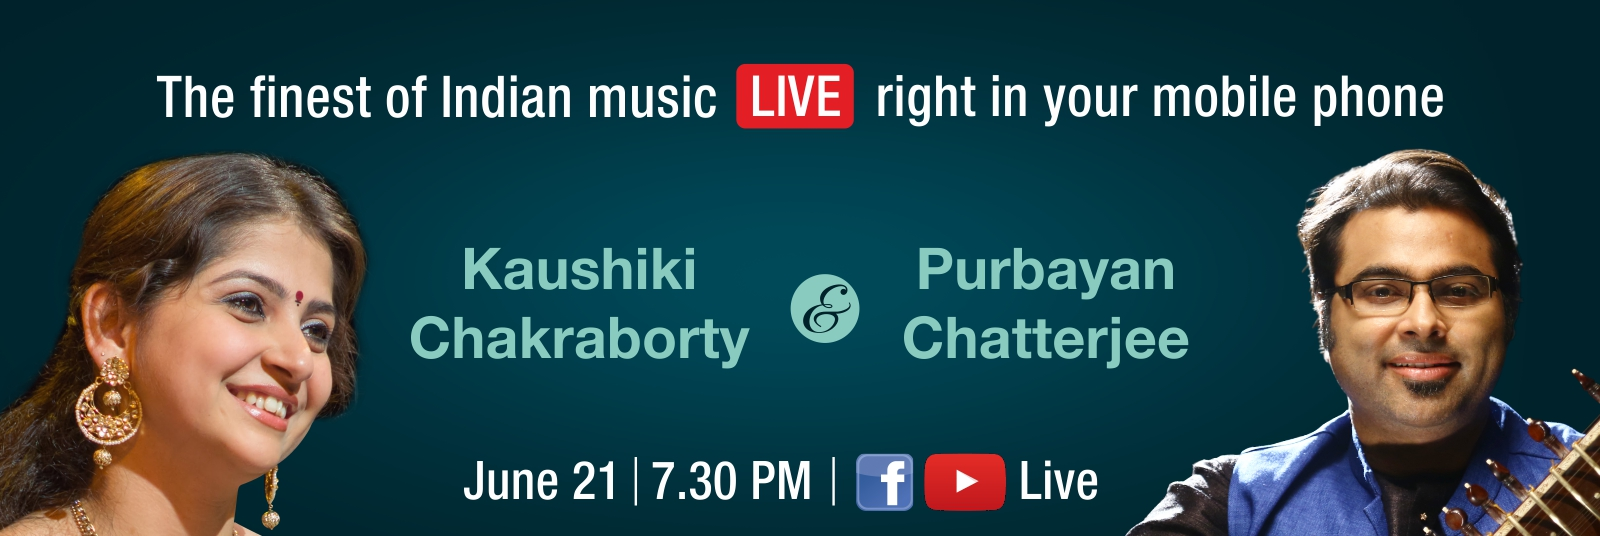 Watch them live on HCL Concerts Facebook & YouTube channels